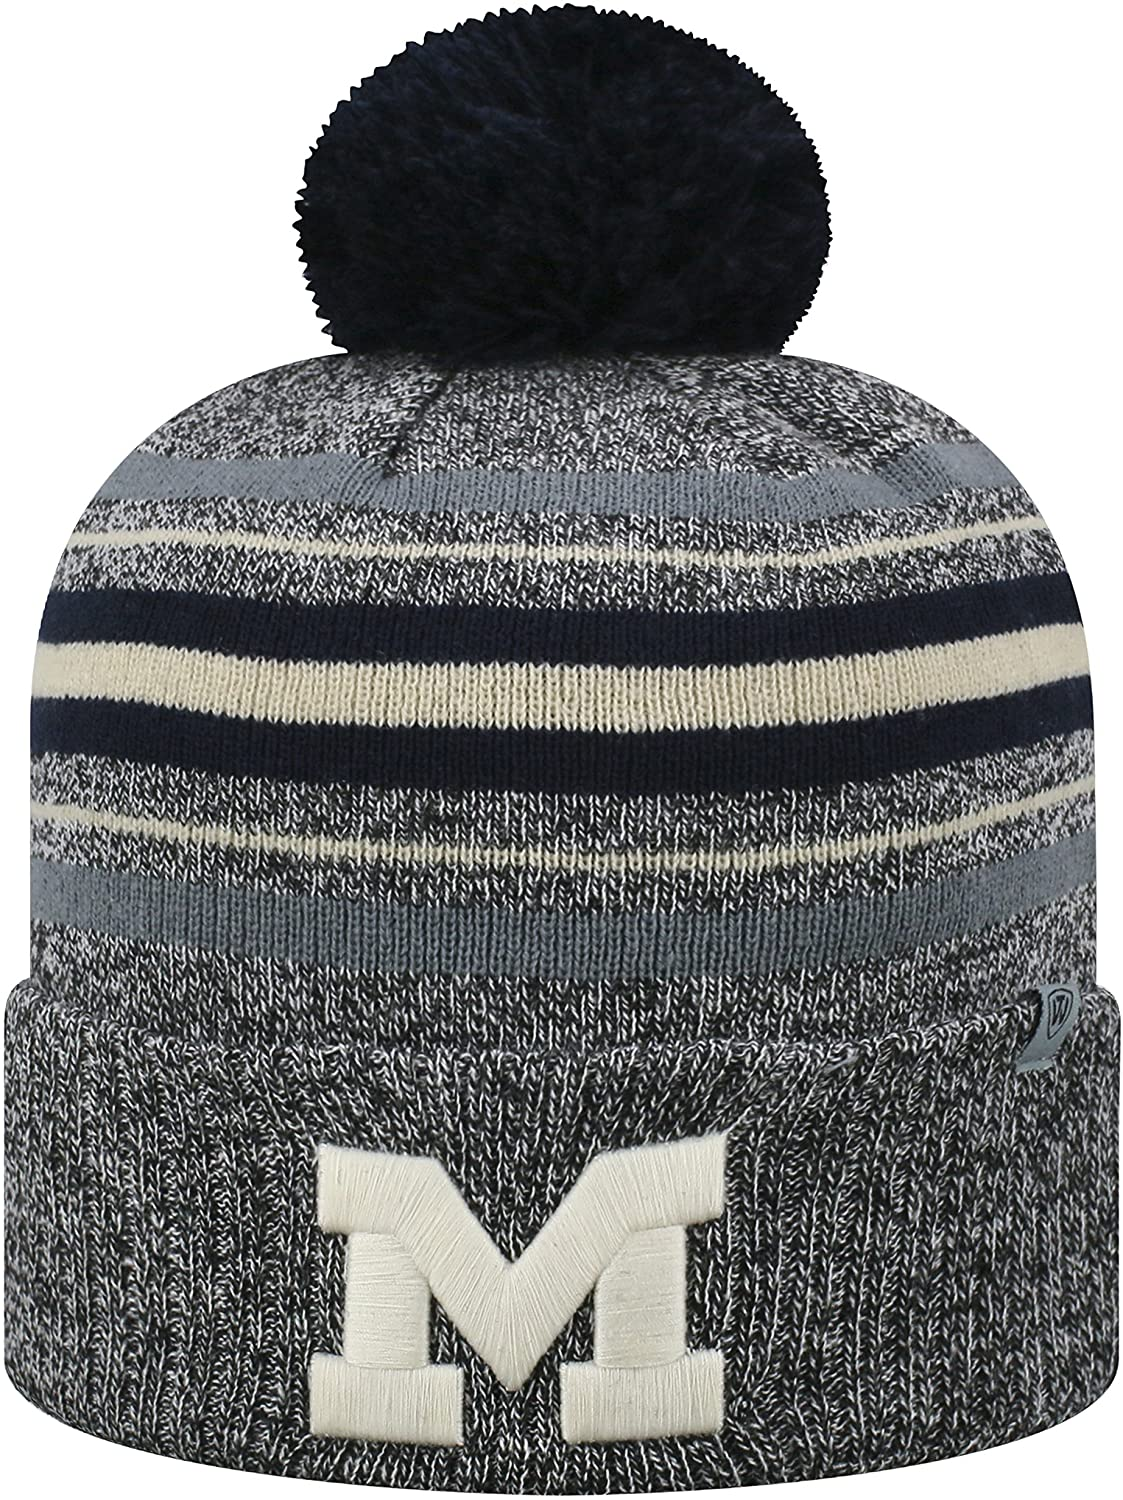 Top of the World Michigan Wolverines Official NCAA Cuffed Knit Sock Hop Stocking Stretch Hat Cap Beanie Pom 473017